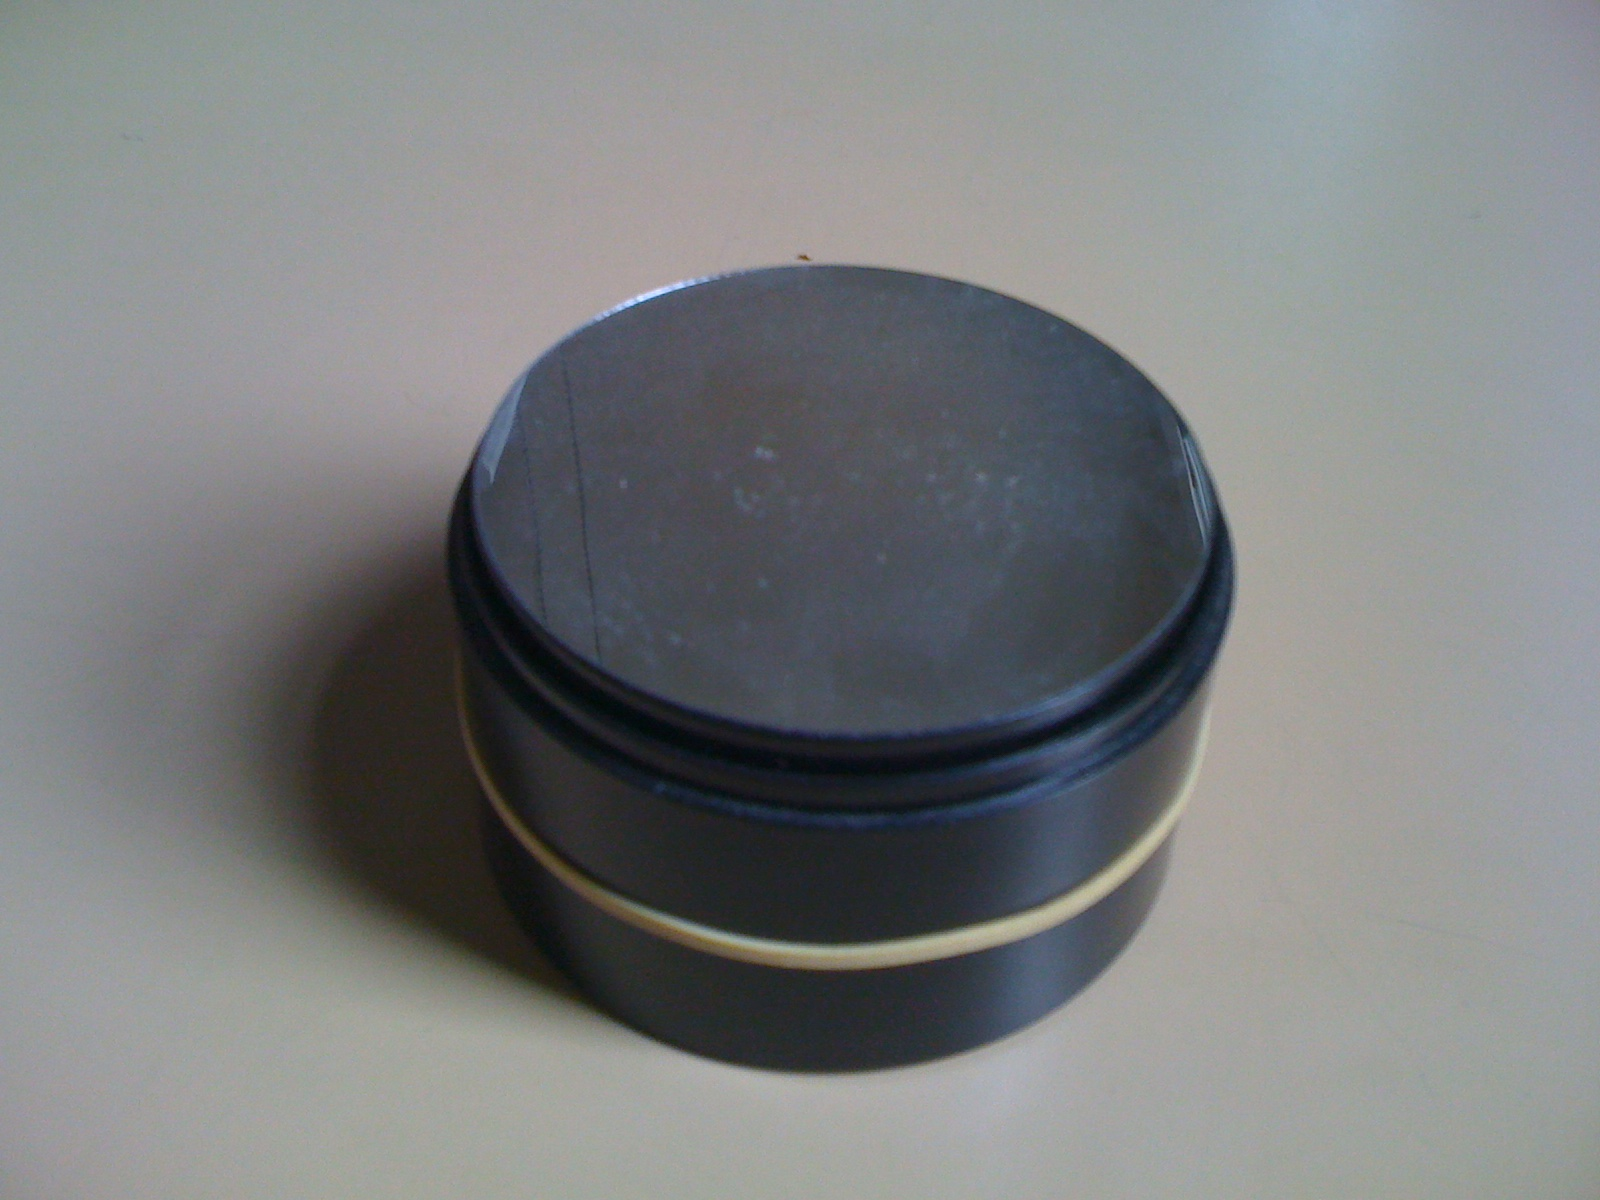 Small turntable